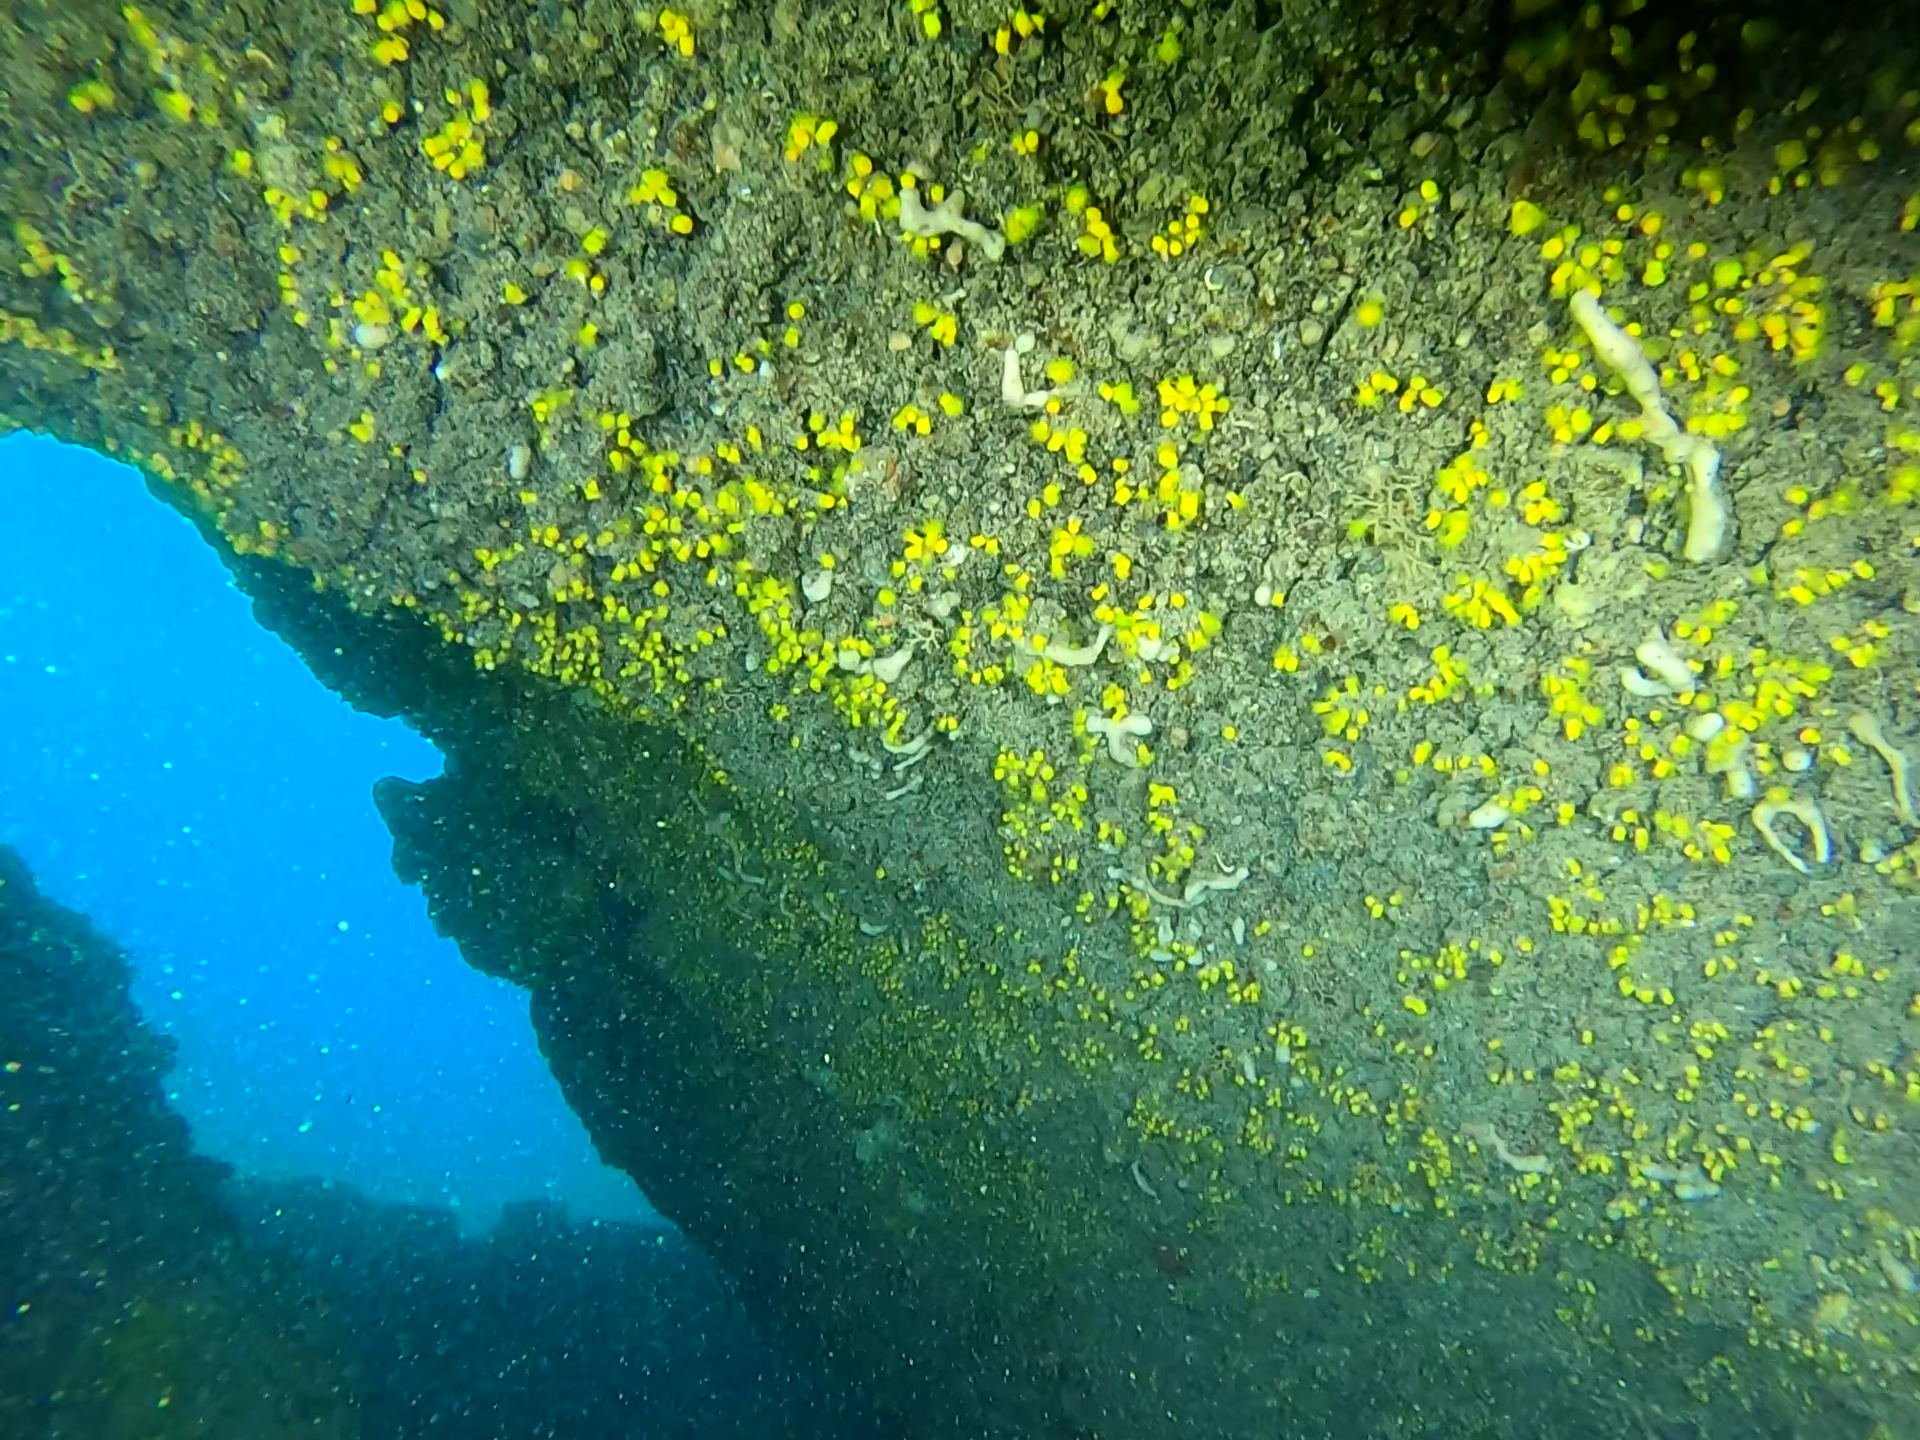 immersione in grotta - Parazoanthus axinellae - intotheblue.it